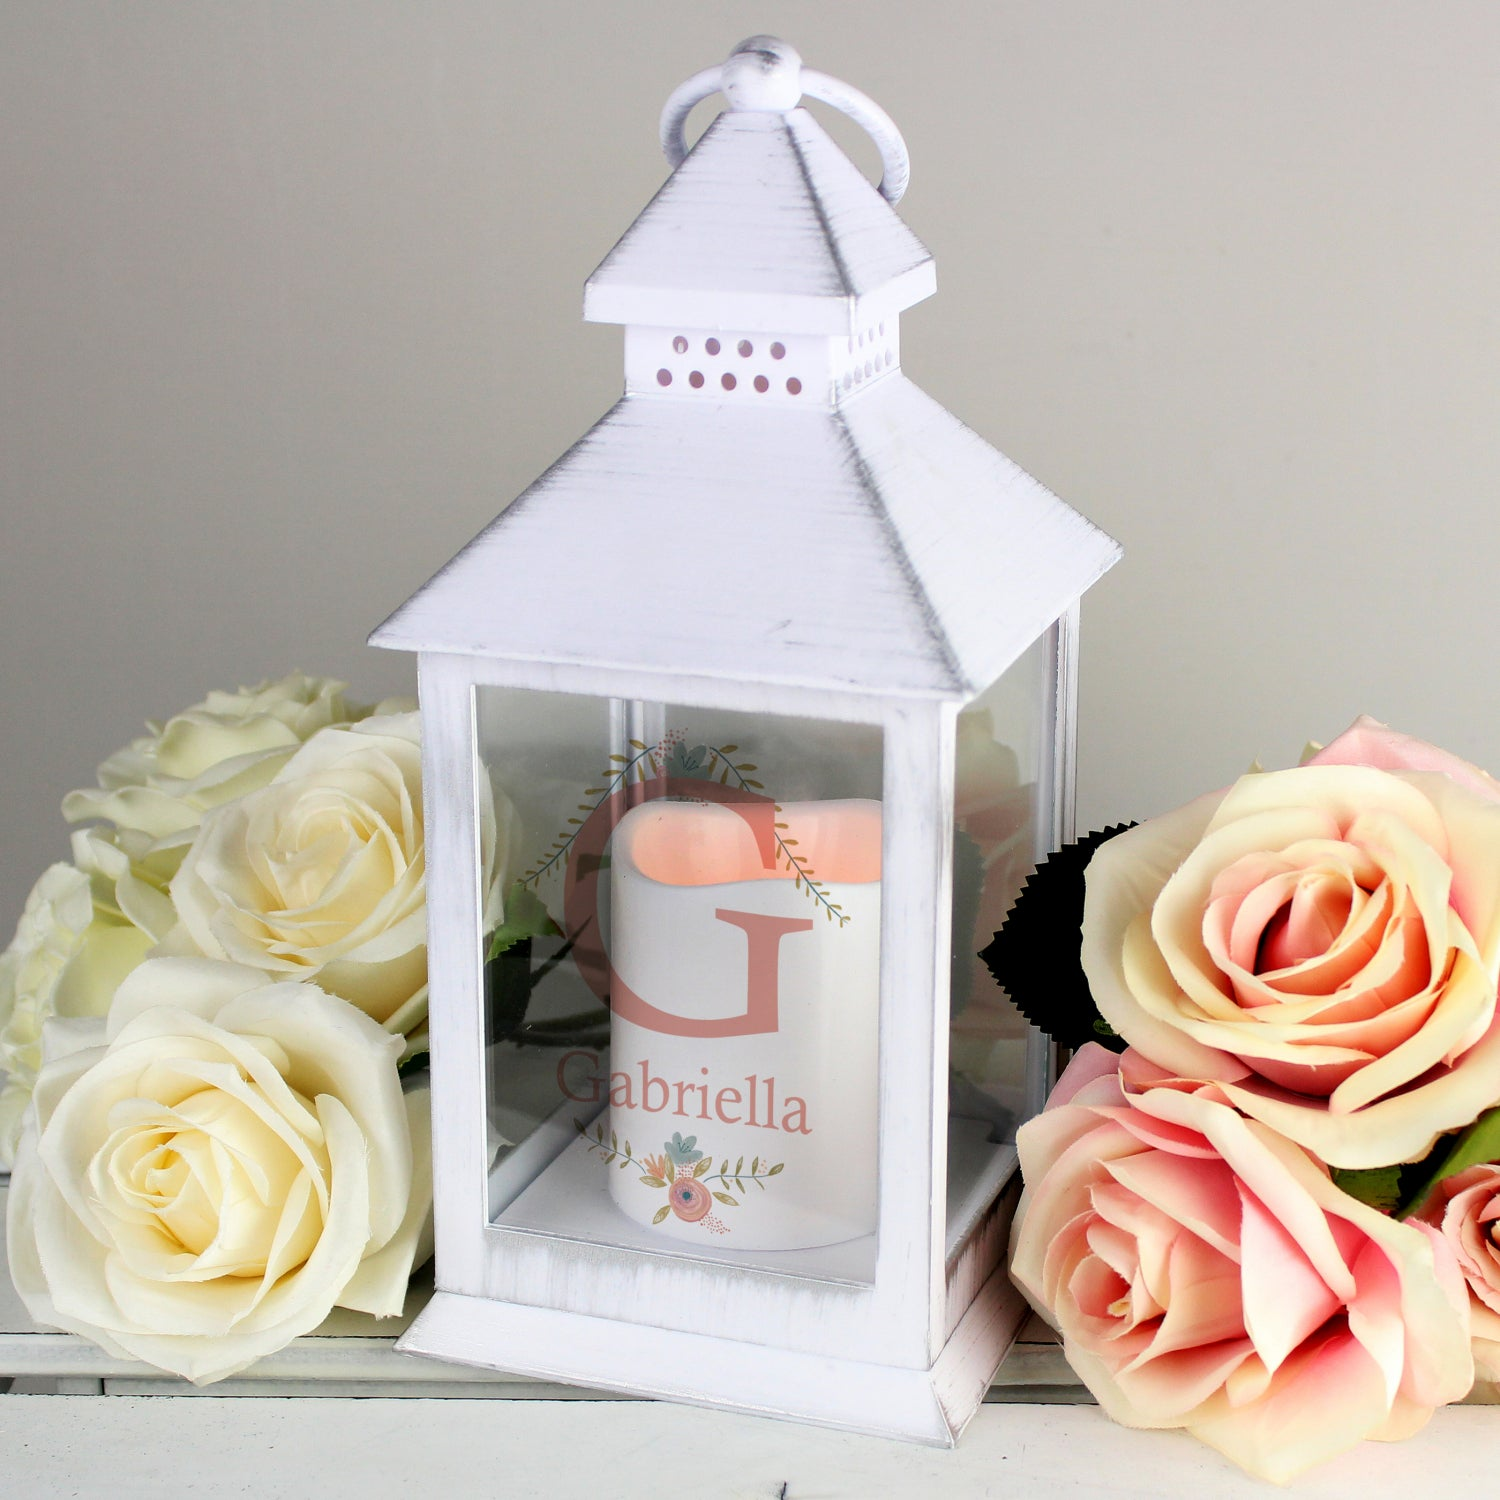 Buy Personalised Floral Bouquet Style White Flickering Candle Lantern £12.99 at Gift Moments